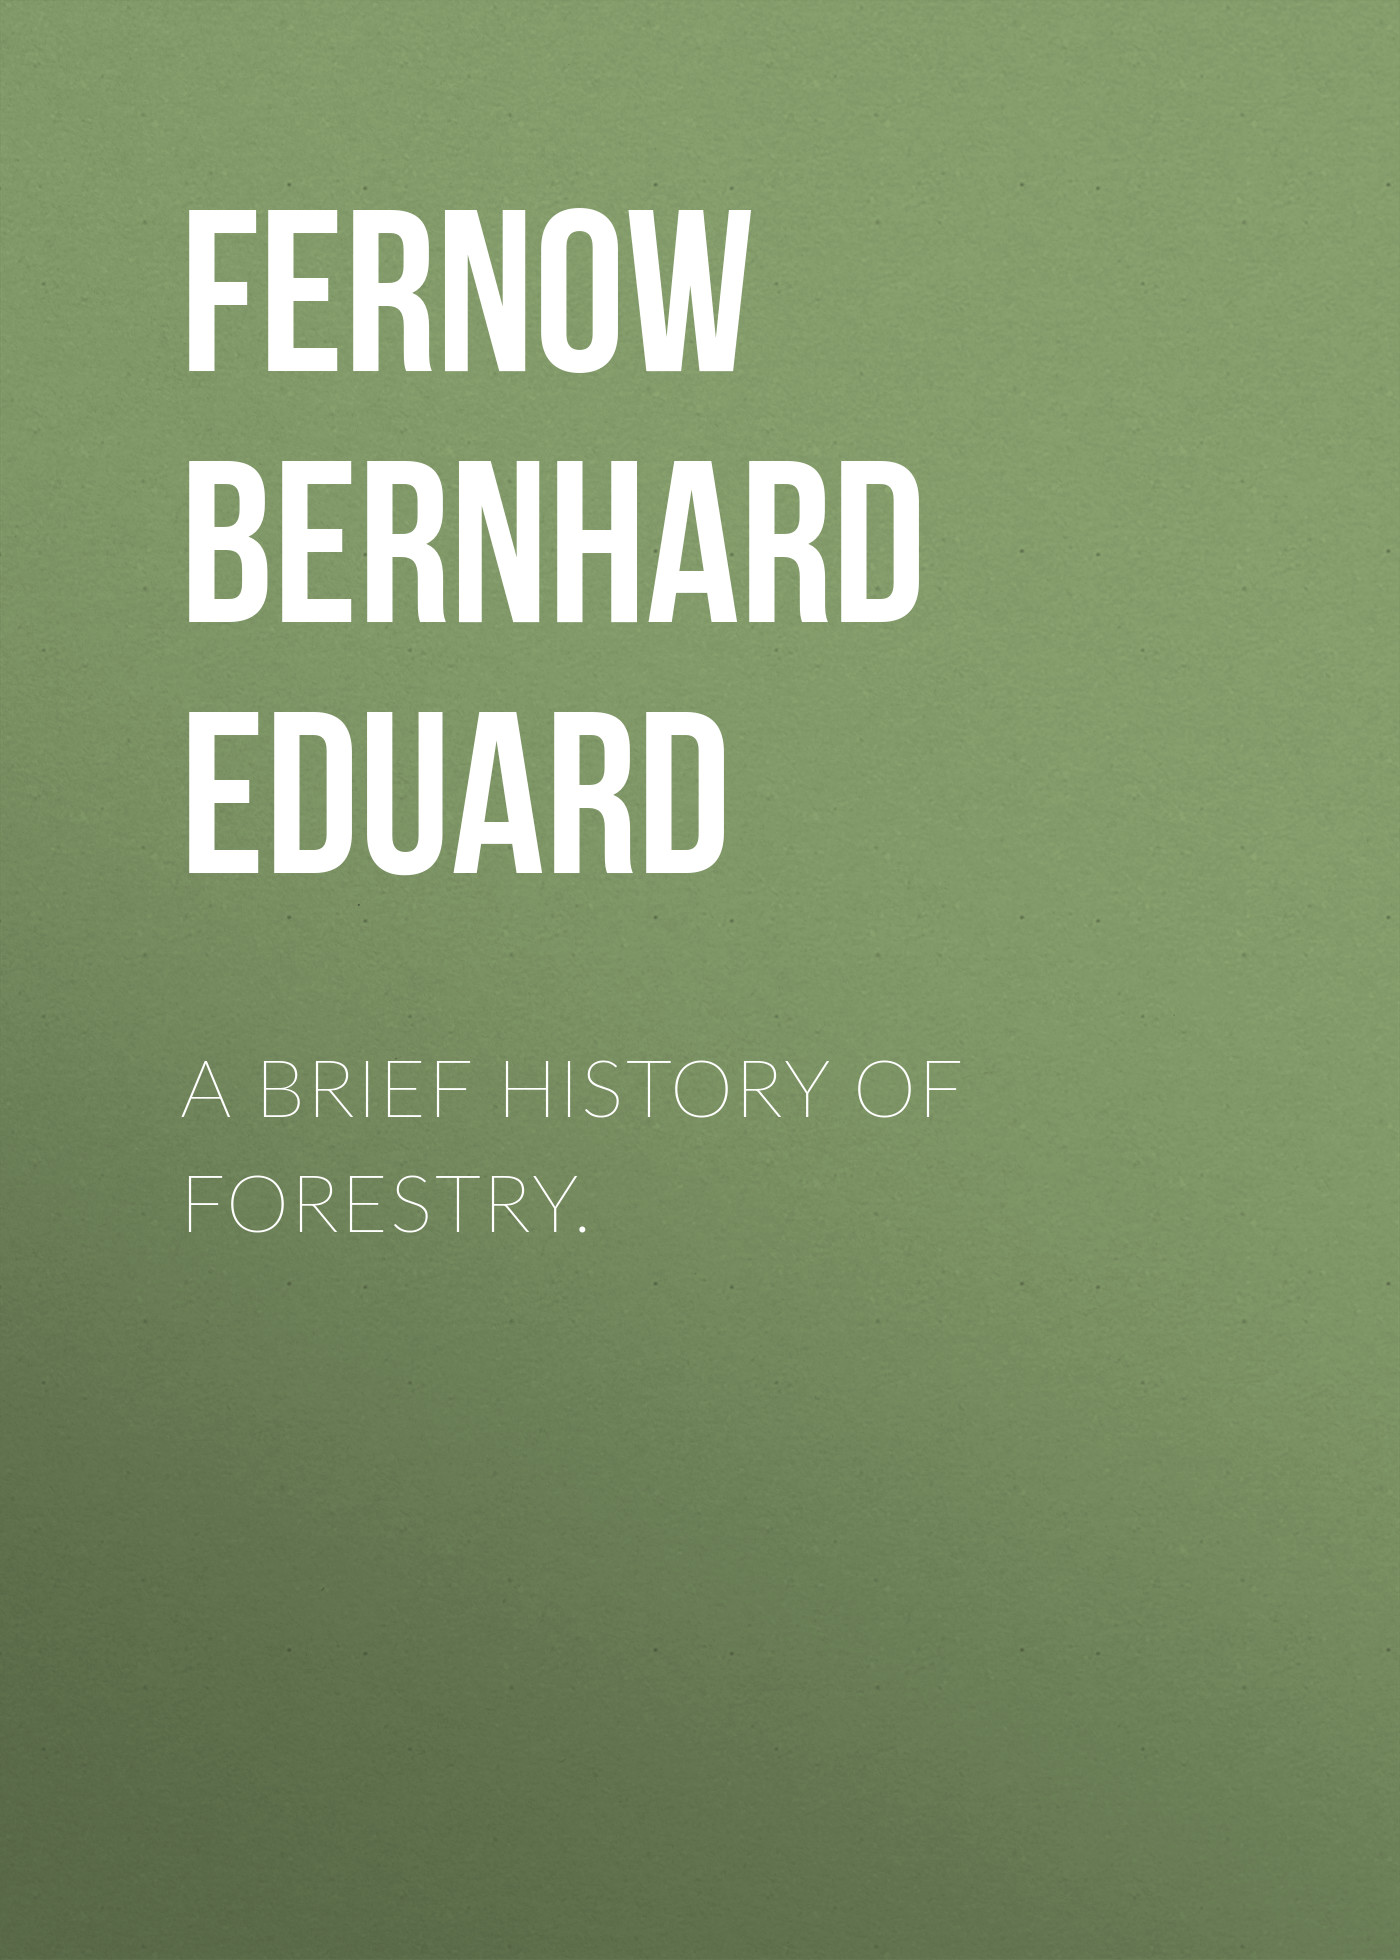 Fernow Bernhard Eduard A Brief History of Forestry. tamara sonn islam a brief history isbn 9781444317848